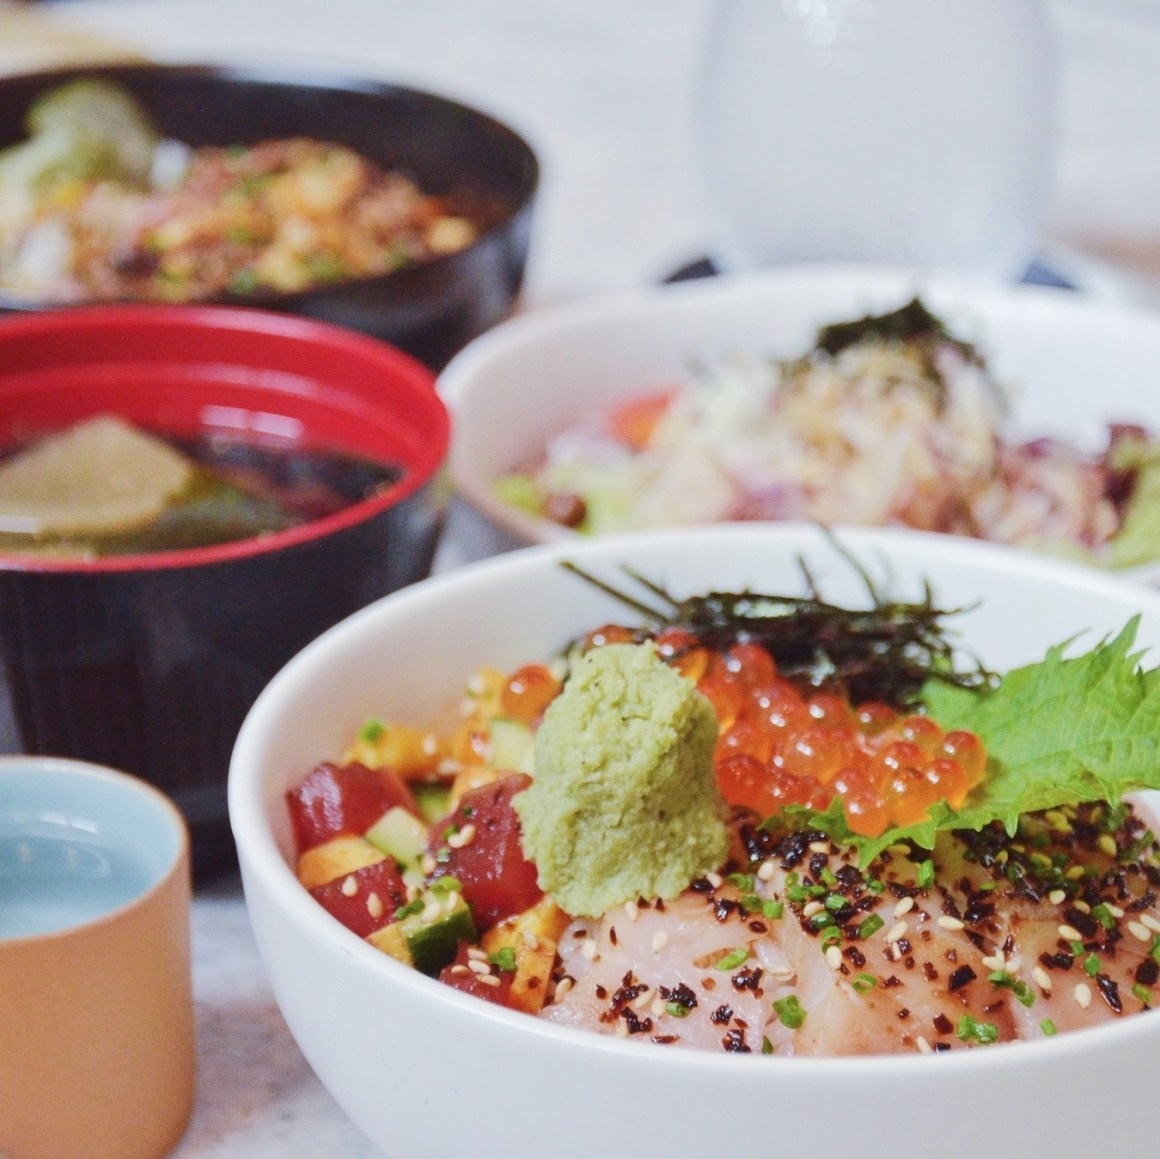 Variety of rice bowls laid out on a table